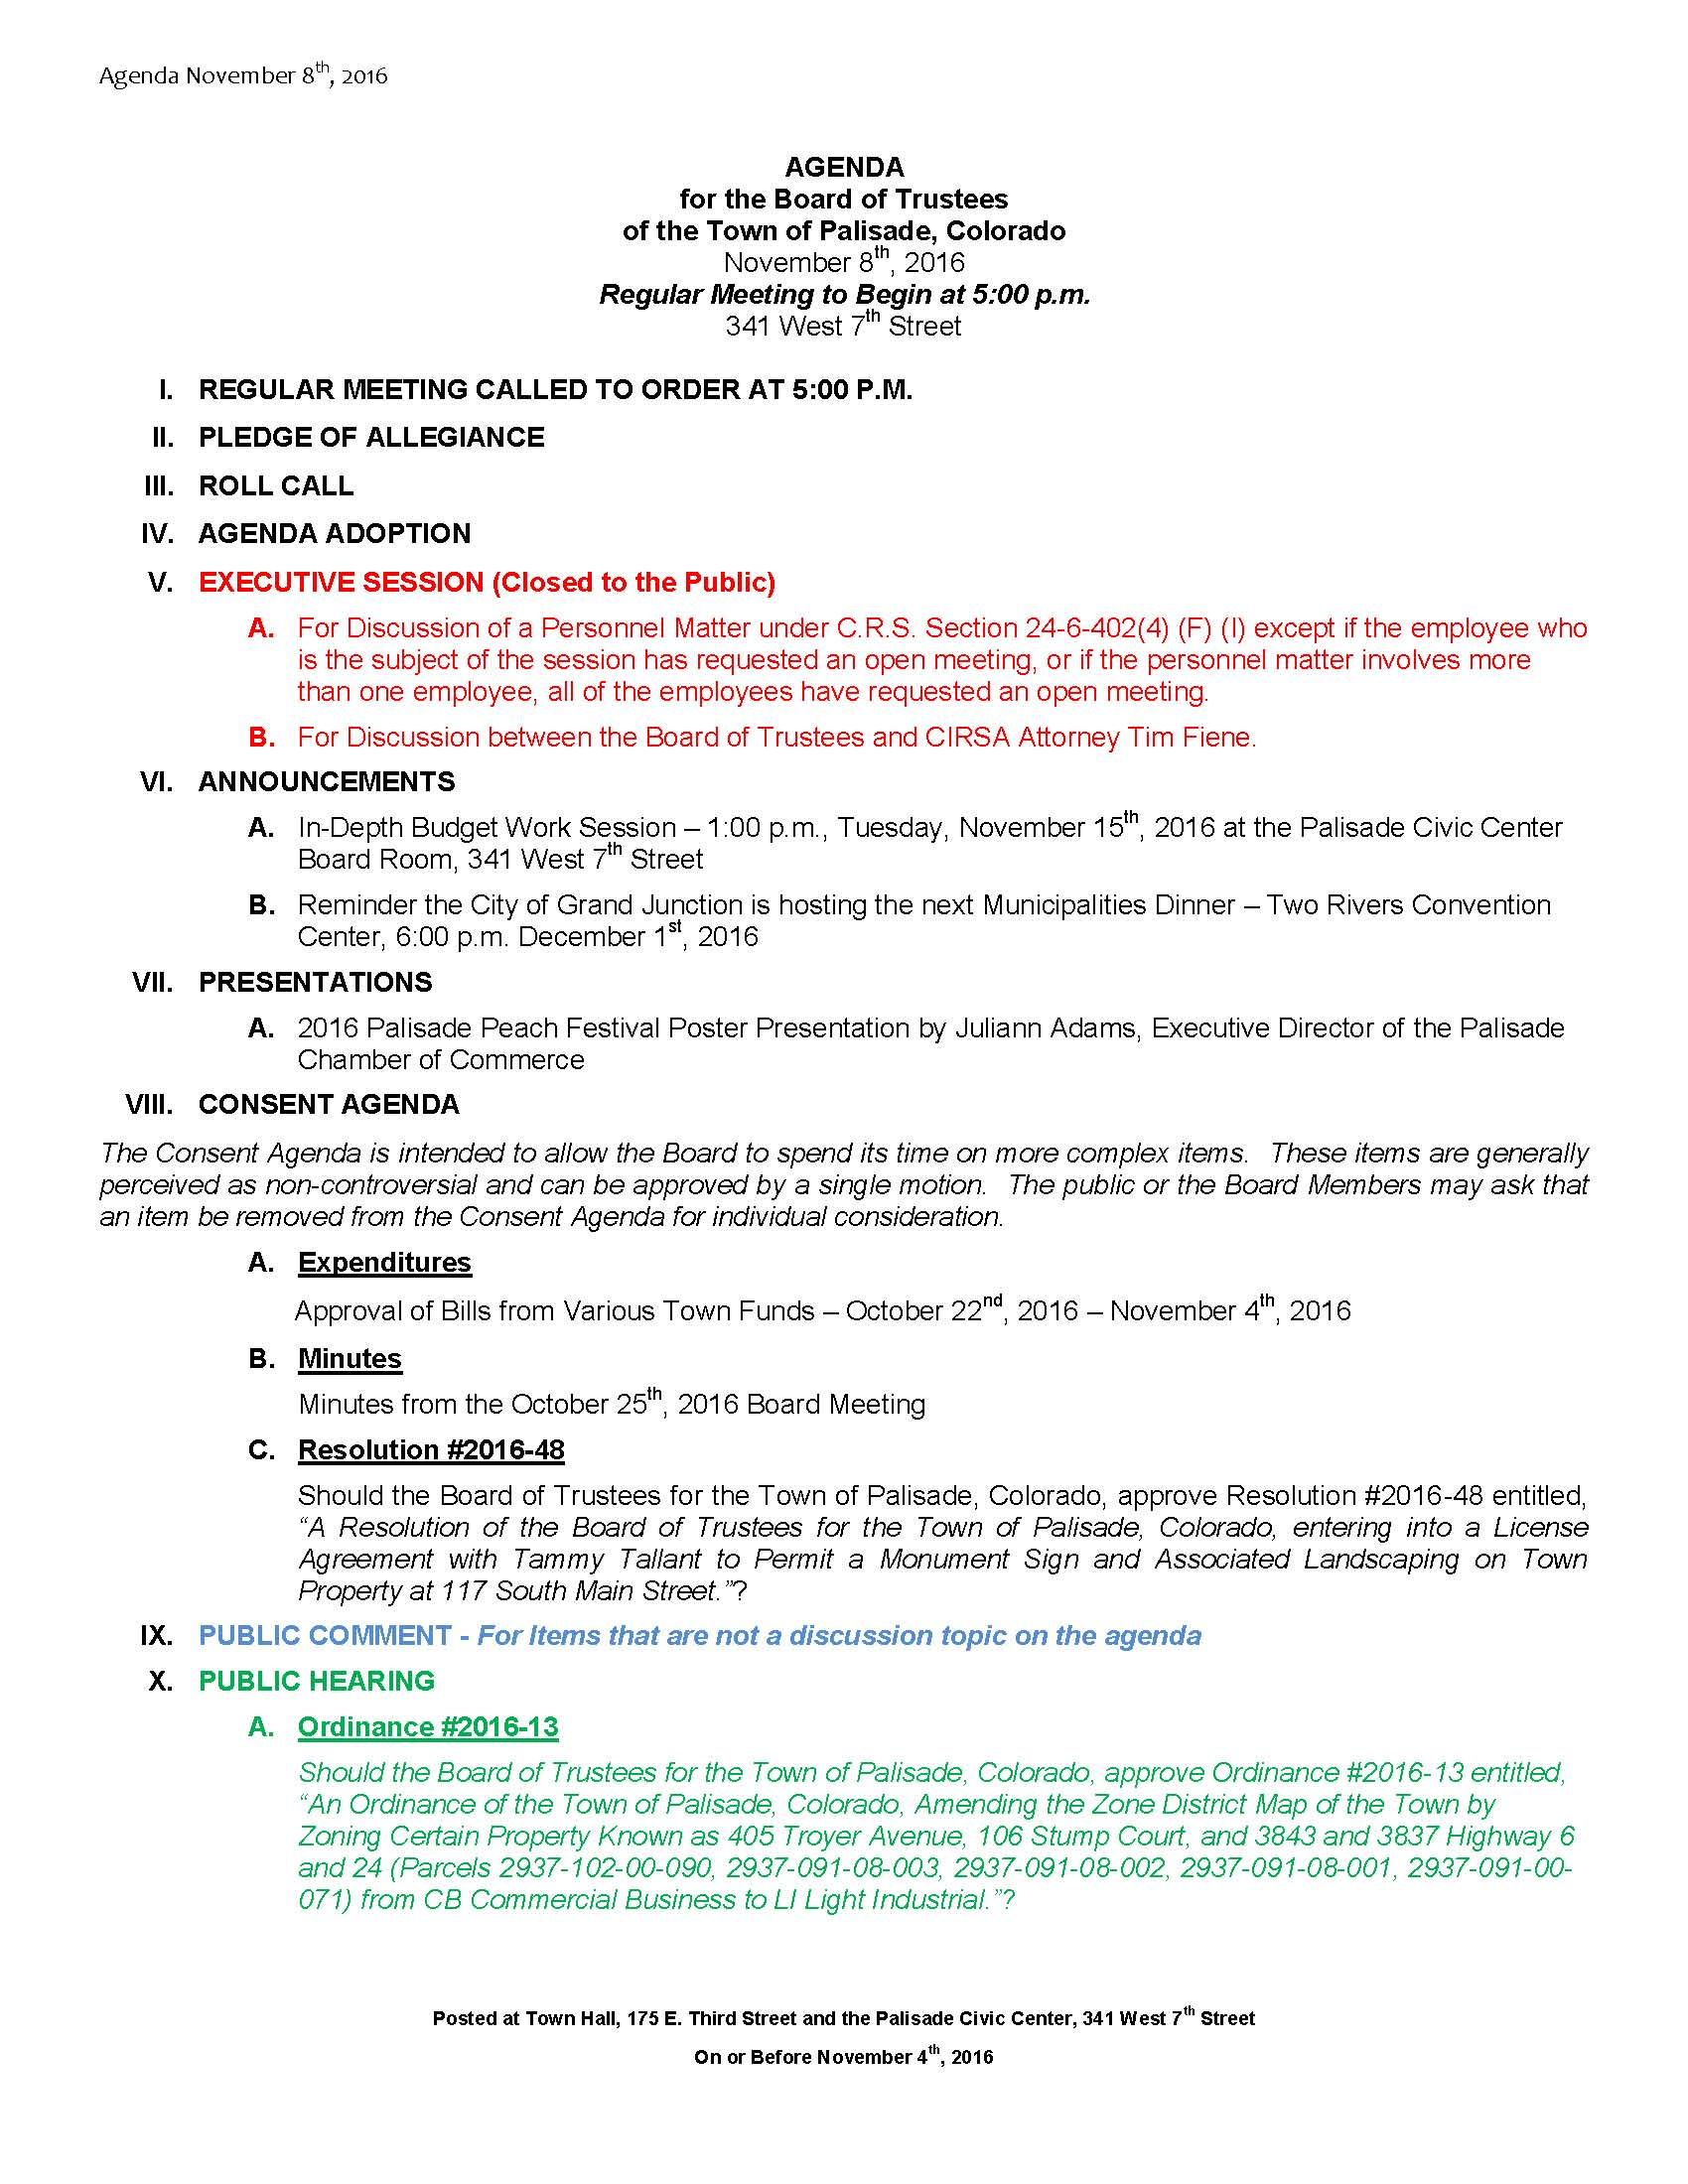 November 8th 2016 Board Meeting Agenda Page 1